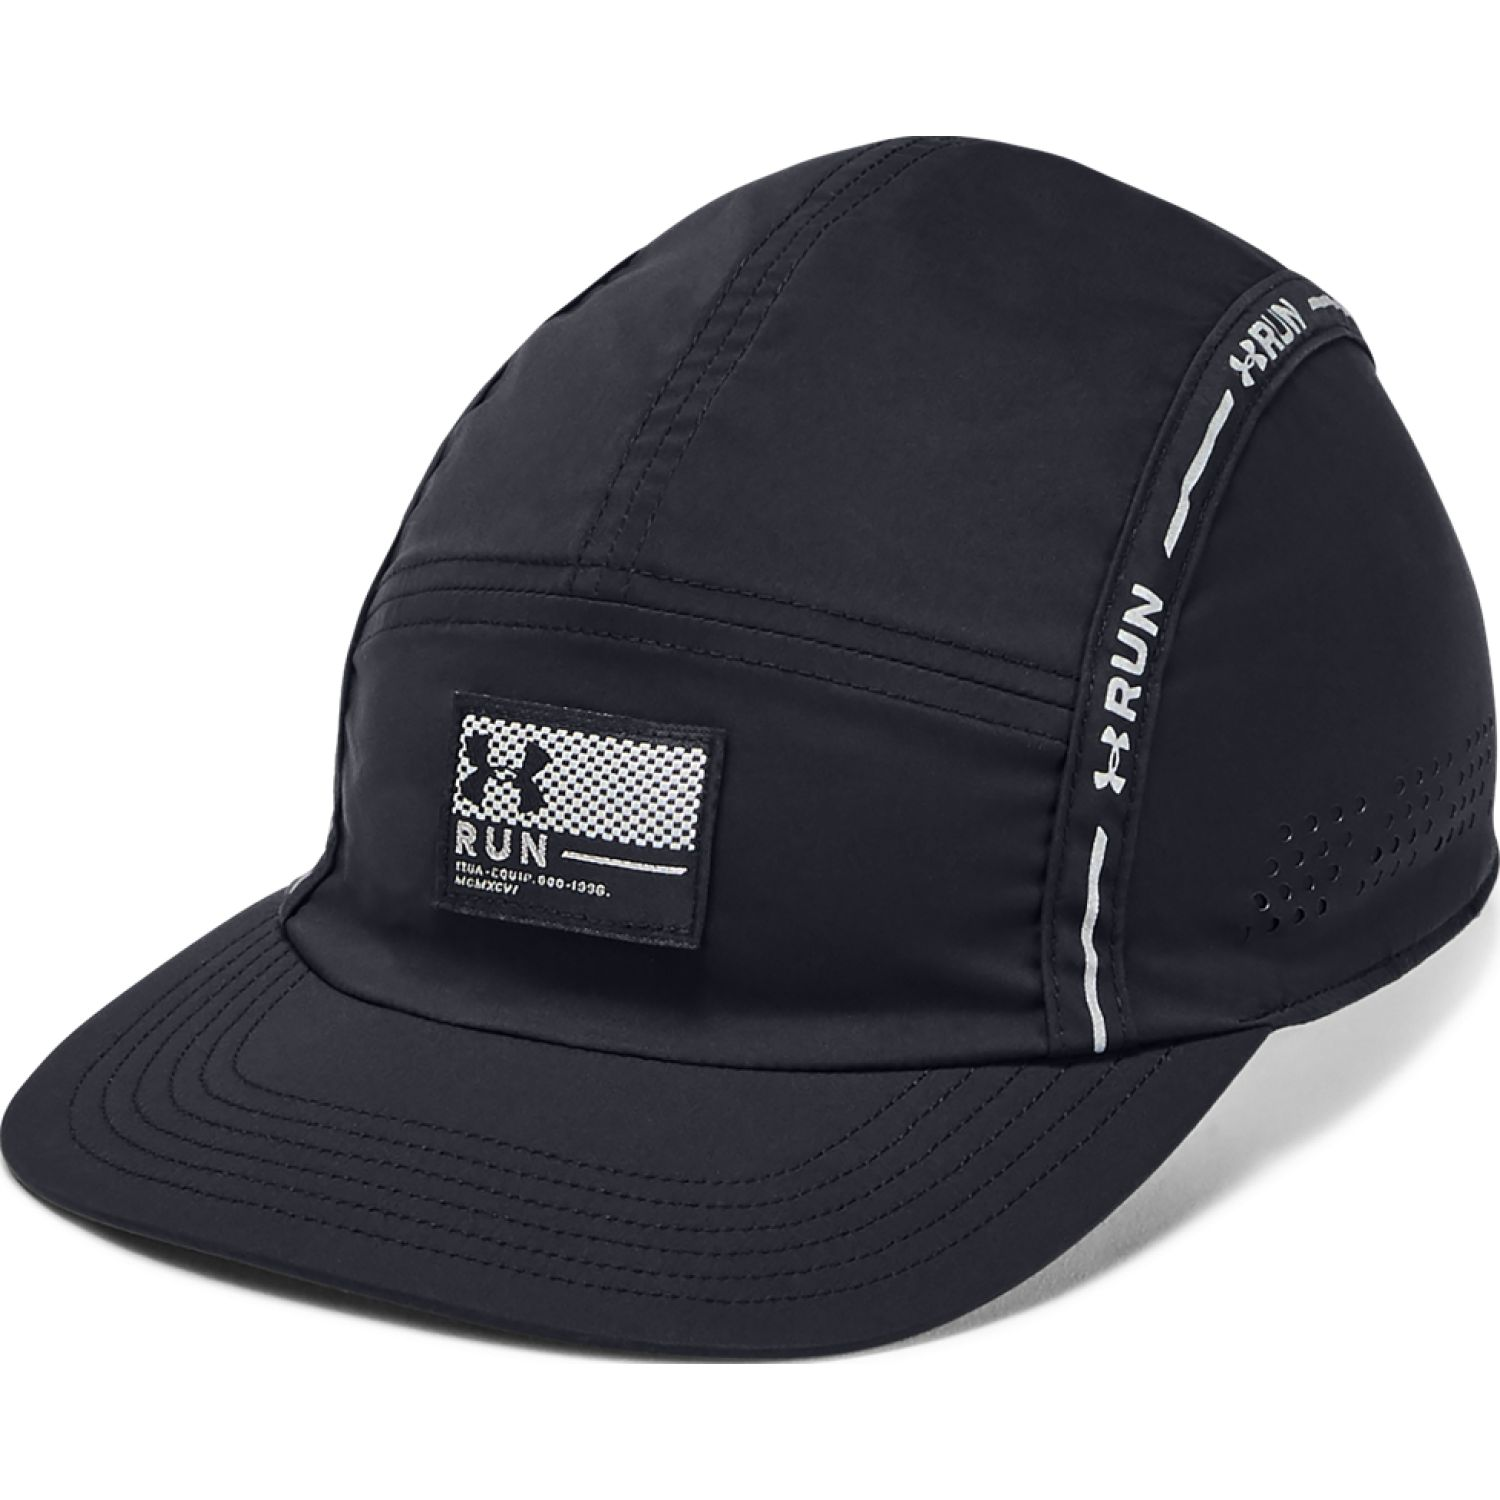 Under Armour men's tb run crew cap 3.0-blk Negro Gorros de Baseball